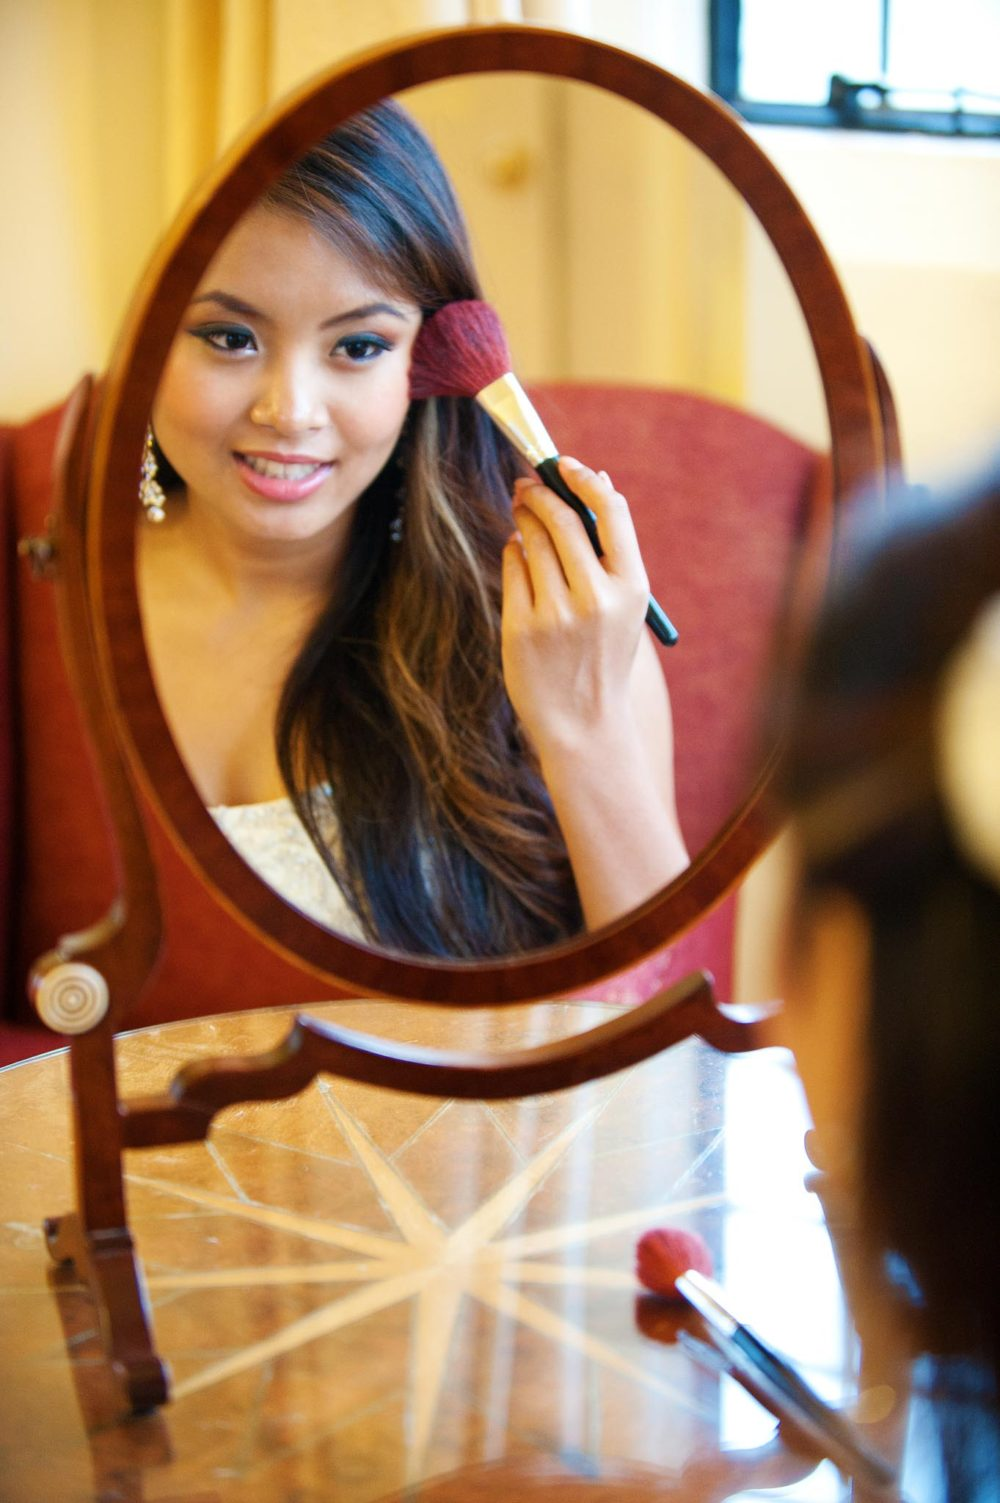 Bride applying make up in front of a table mirror at her room before the wedding